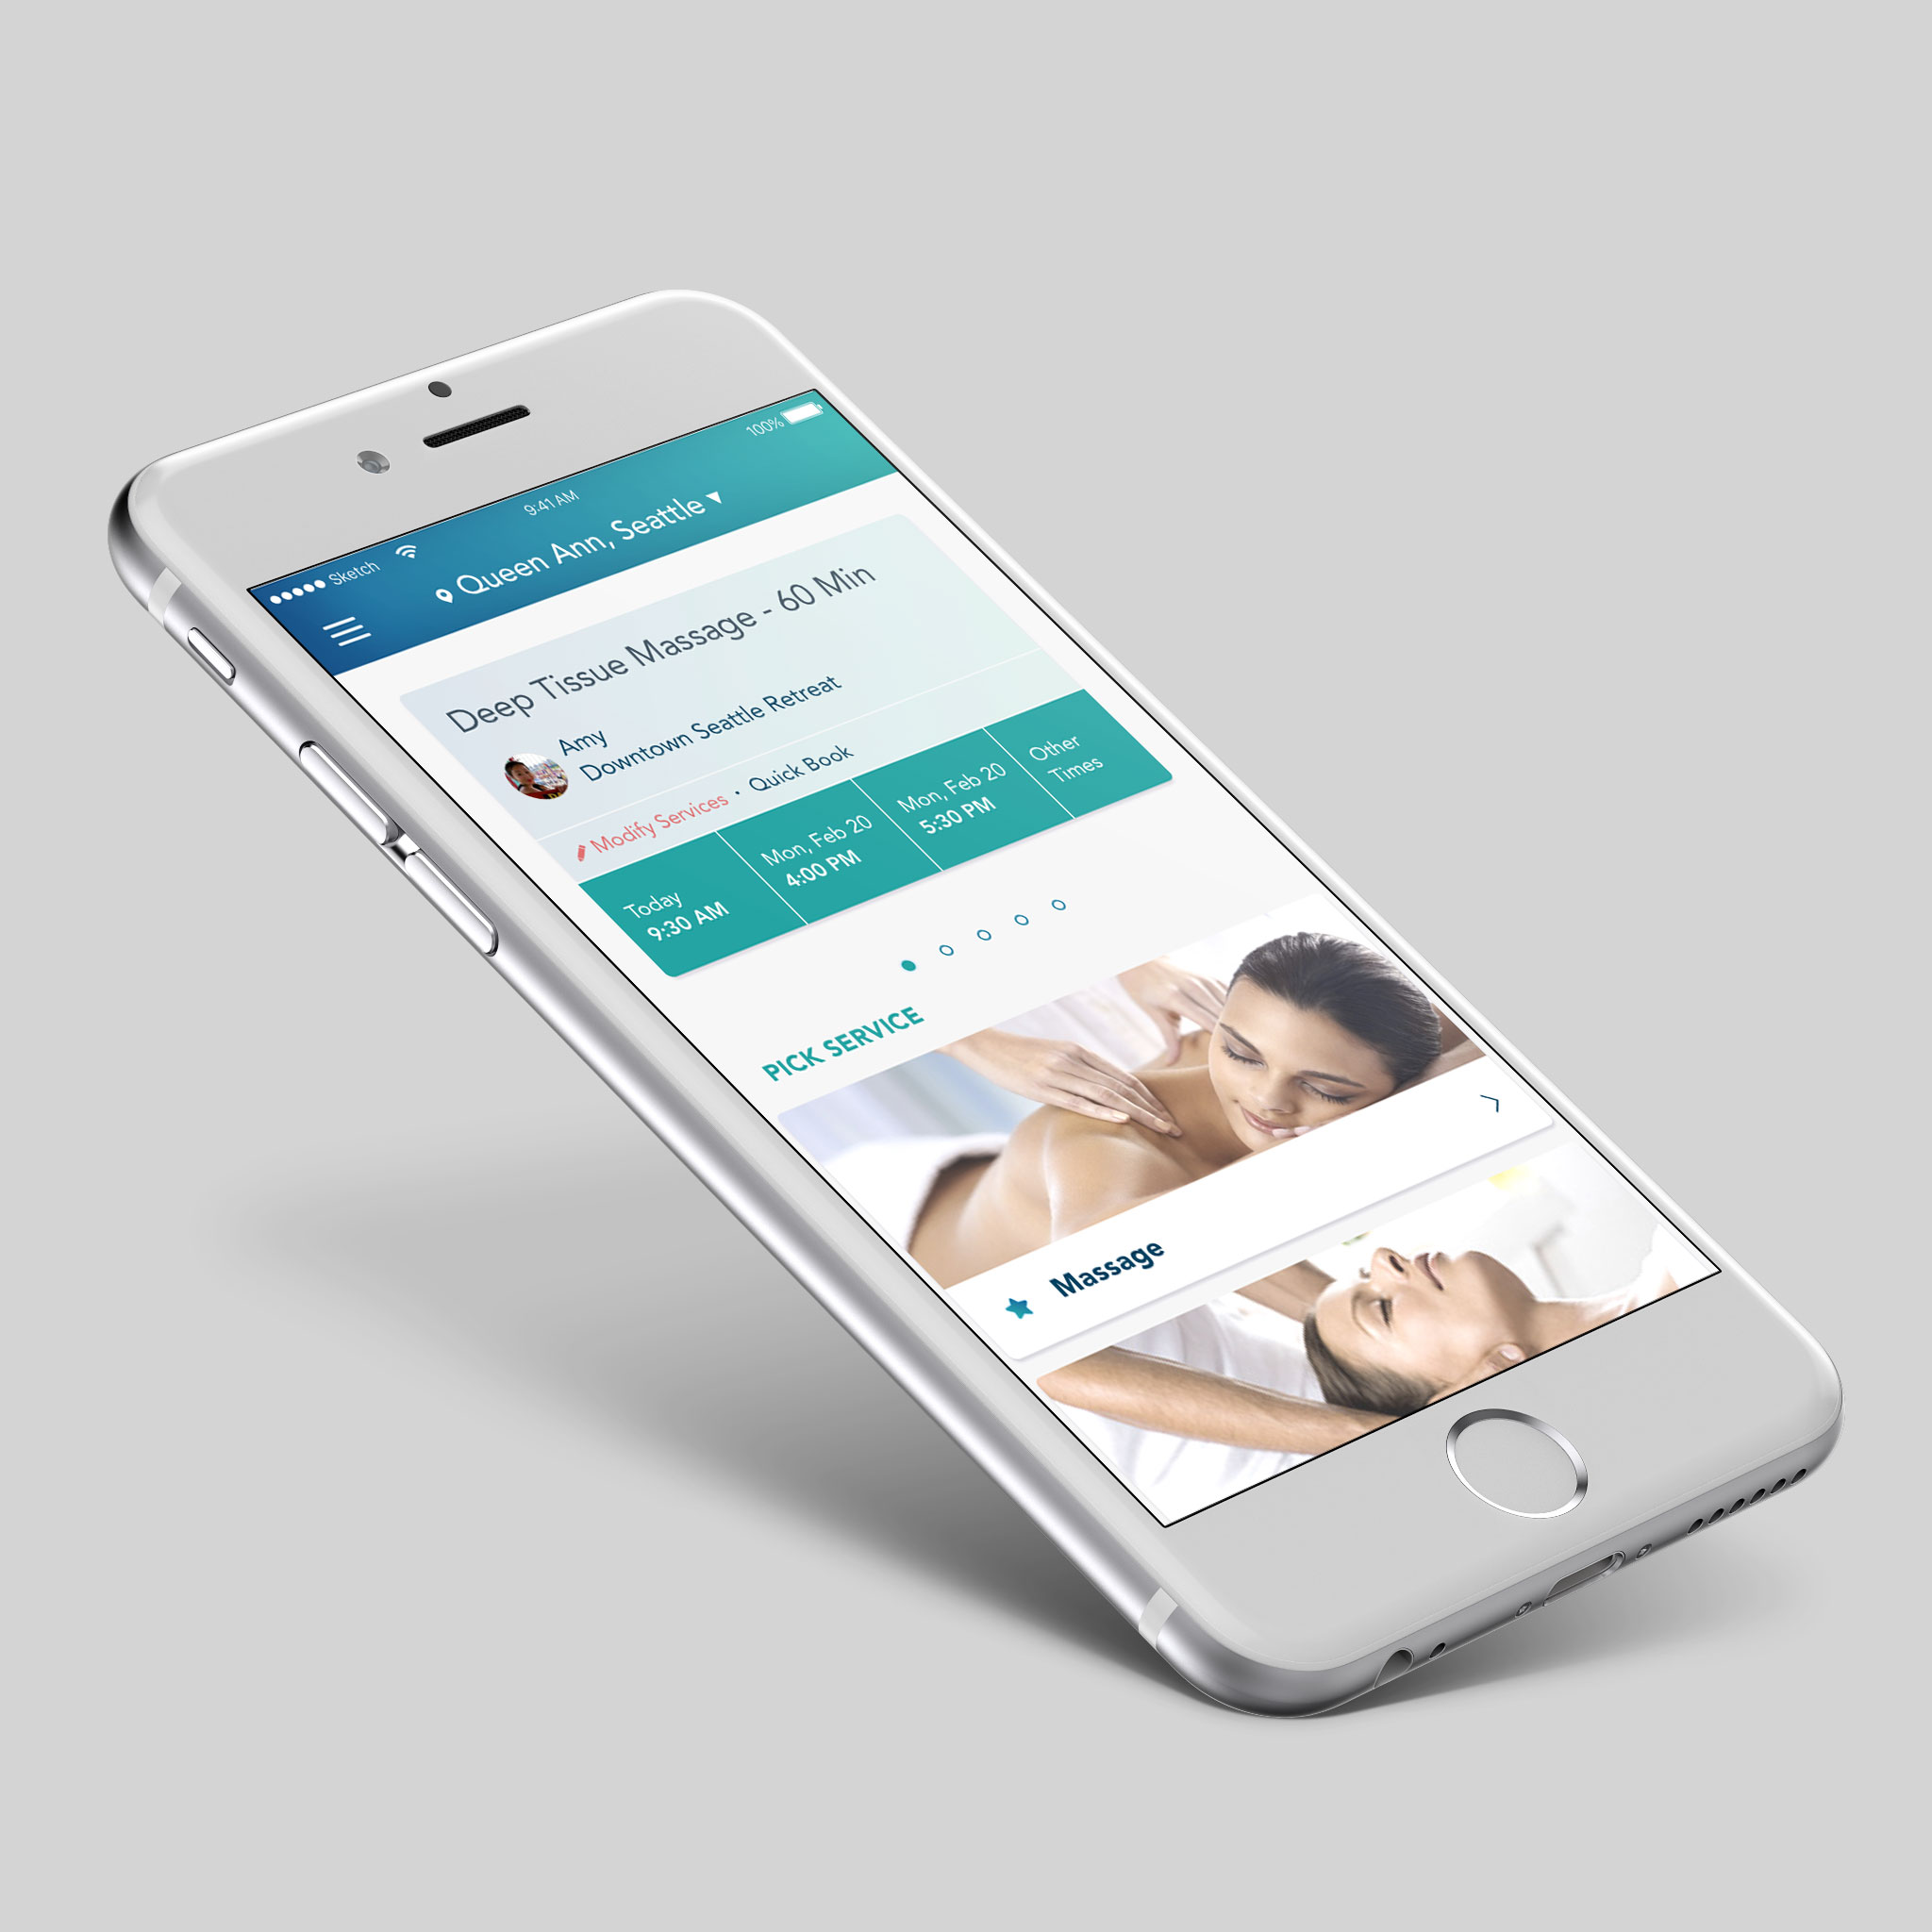 If you are a member, enjoy the experience of this convenience by downloading this app from the AppStore.Or view the demo video here. -